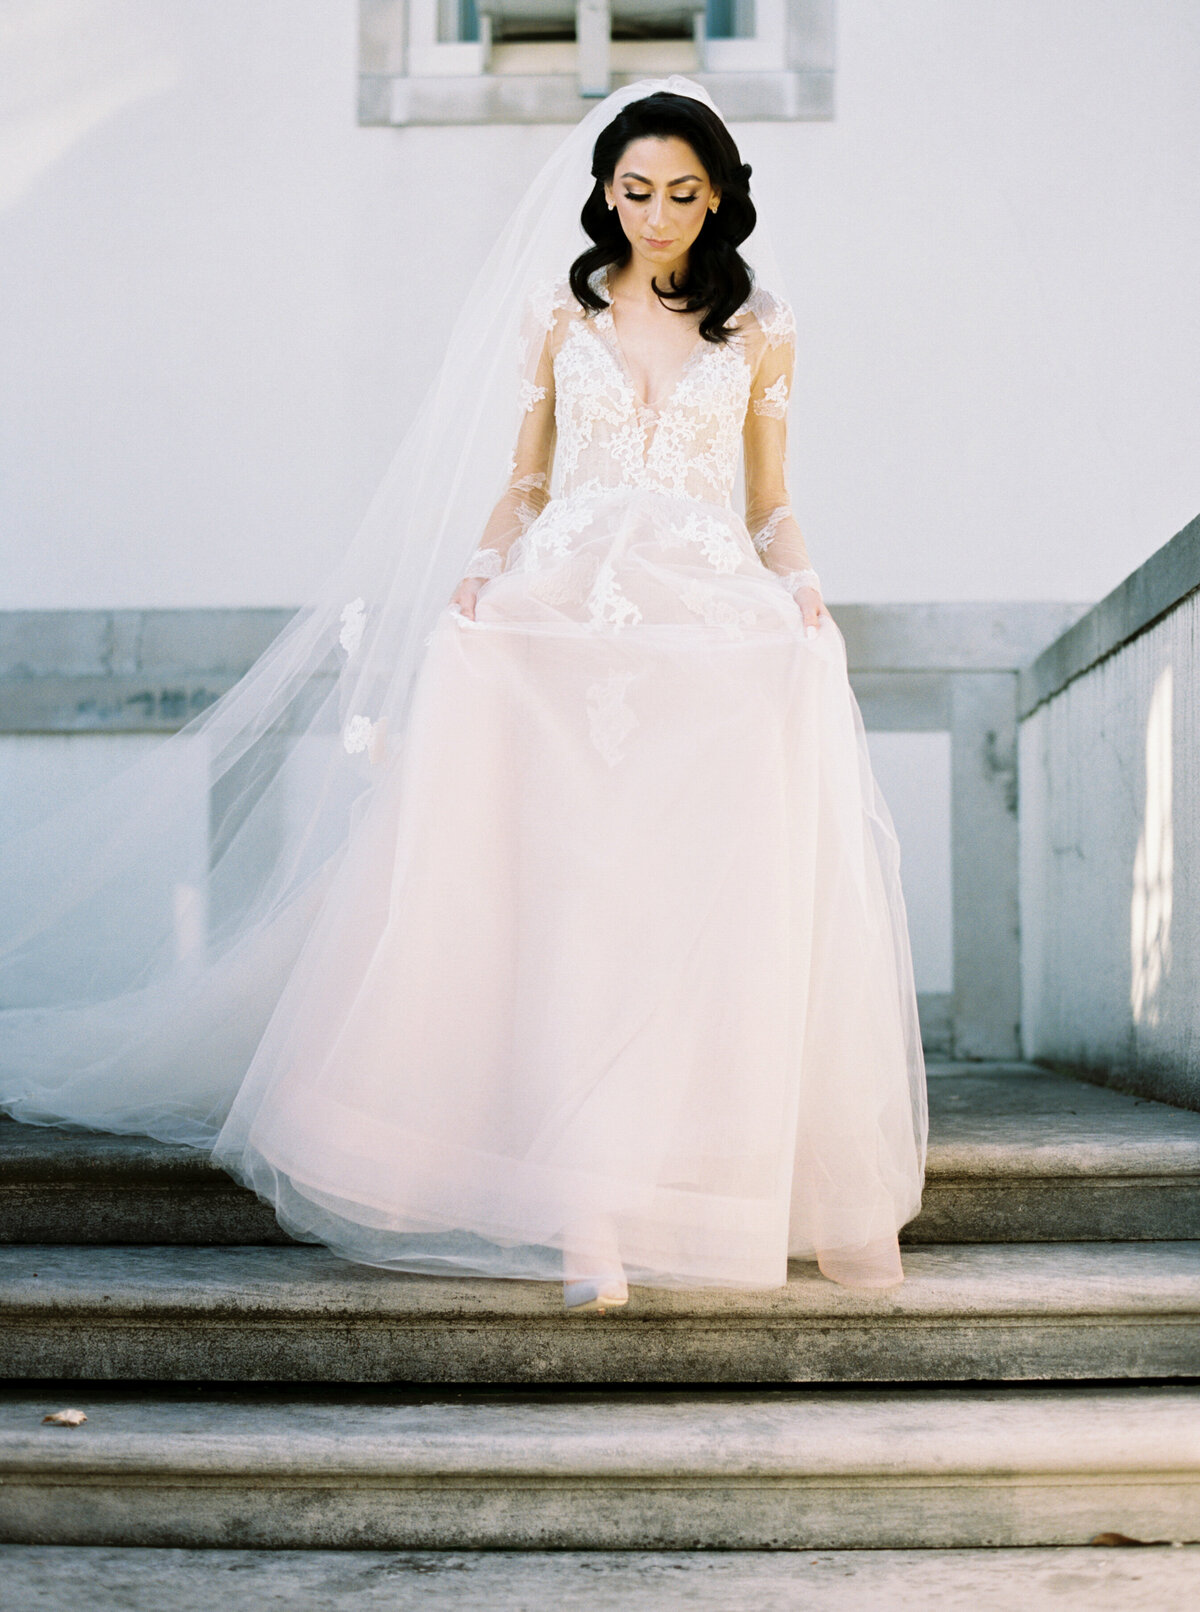 Kaylea Moreno_wedding gallery - Rami-Cassandra-Wedding-krmorenophoto-129